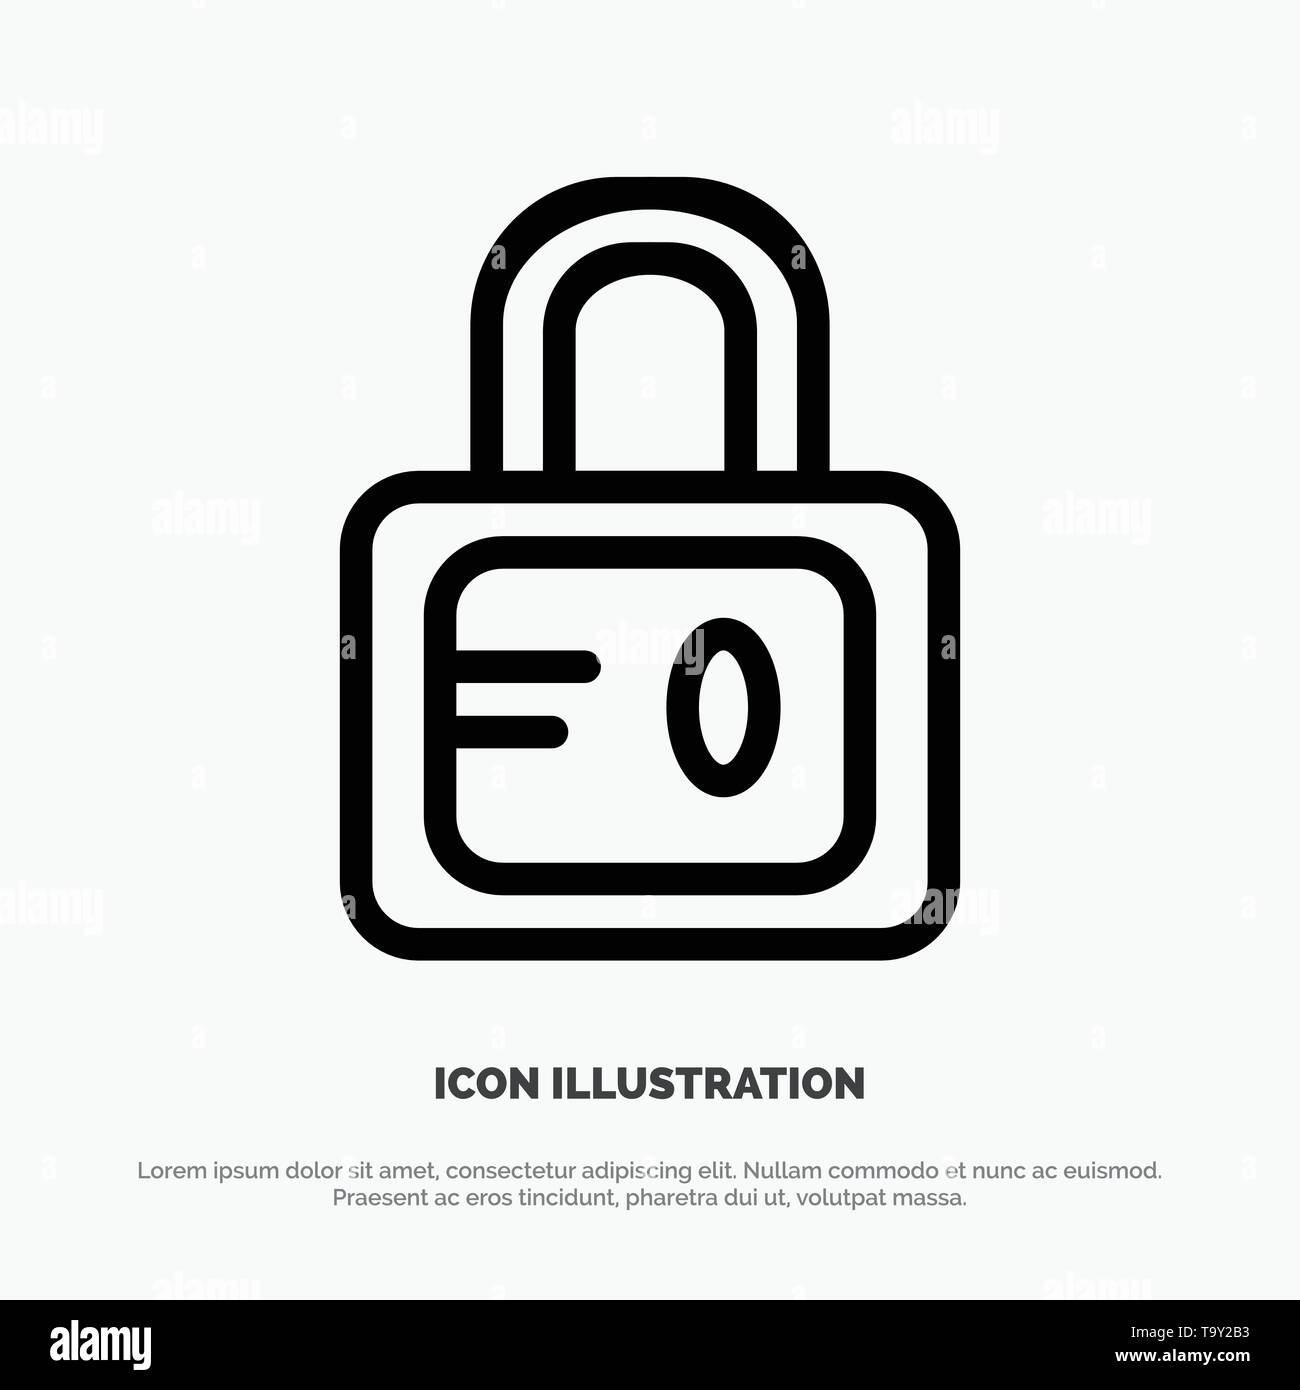 Lock, School, Study Line Icon Vector - Stock Image